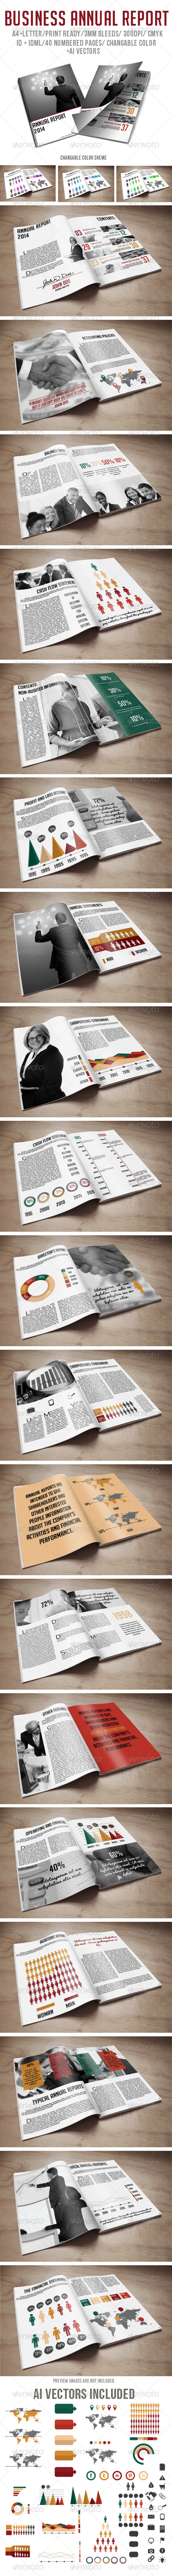 GraphicRiver Business Anual Report 6321697